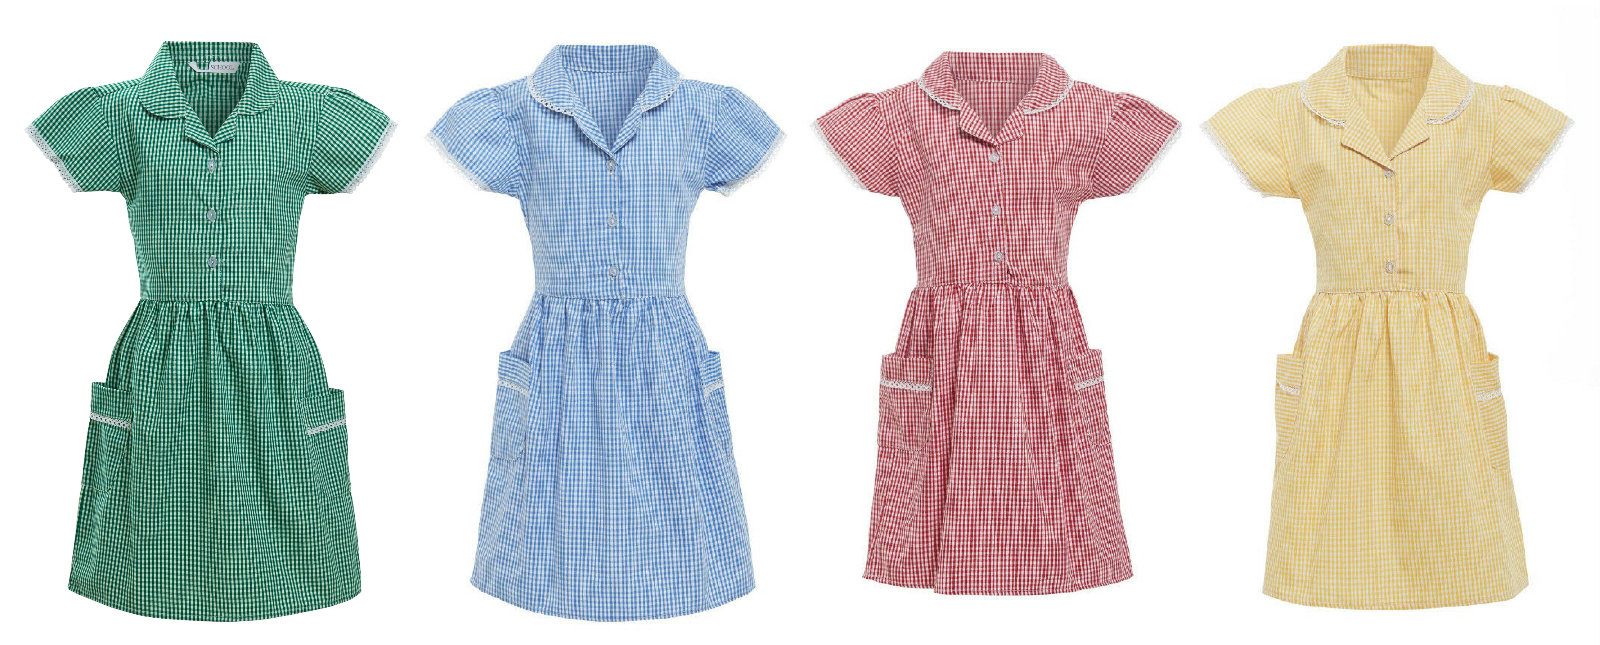 78d1f54401 Girls School Dress Ex Marks and Spencer 100% Cotton Gingham Check Lace  Collar 2 2 of 2 See More